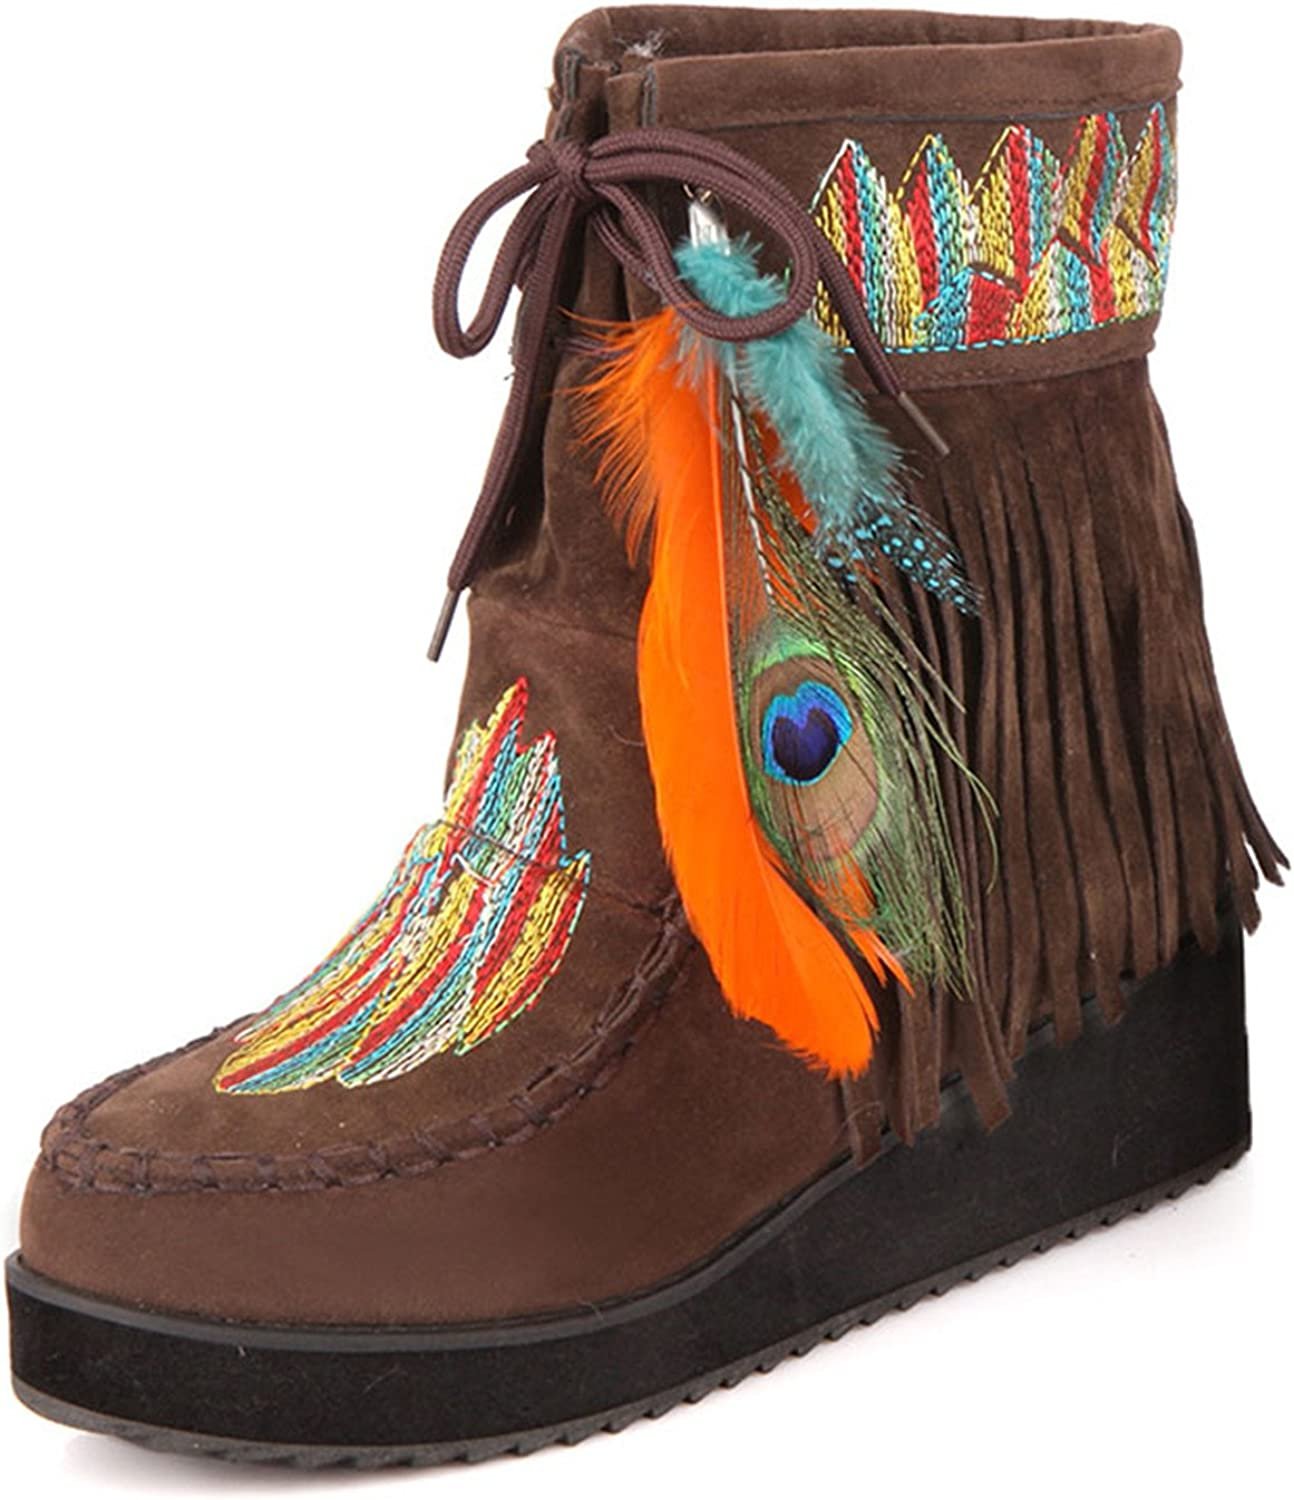 Jeff Tribble Retro Fringe Boots Flock Chunky Feather Women Ankle Short Boots Tassels Big Size shoes Size 34-43